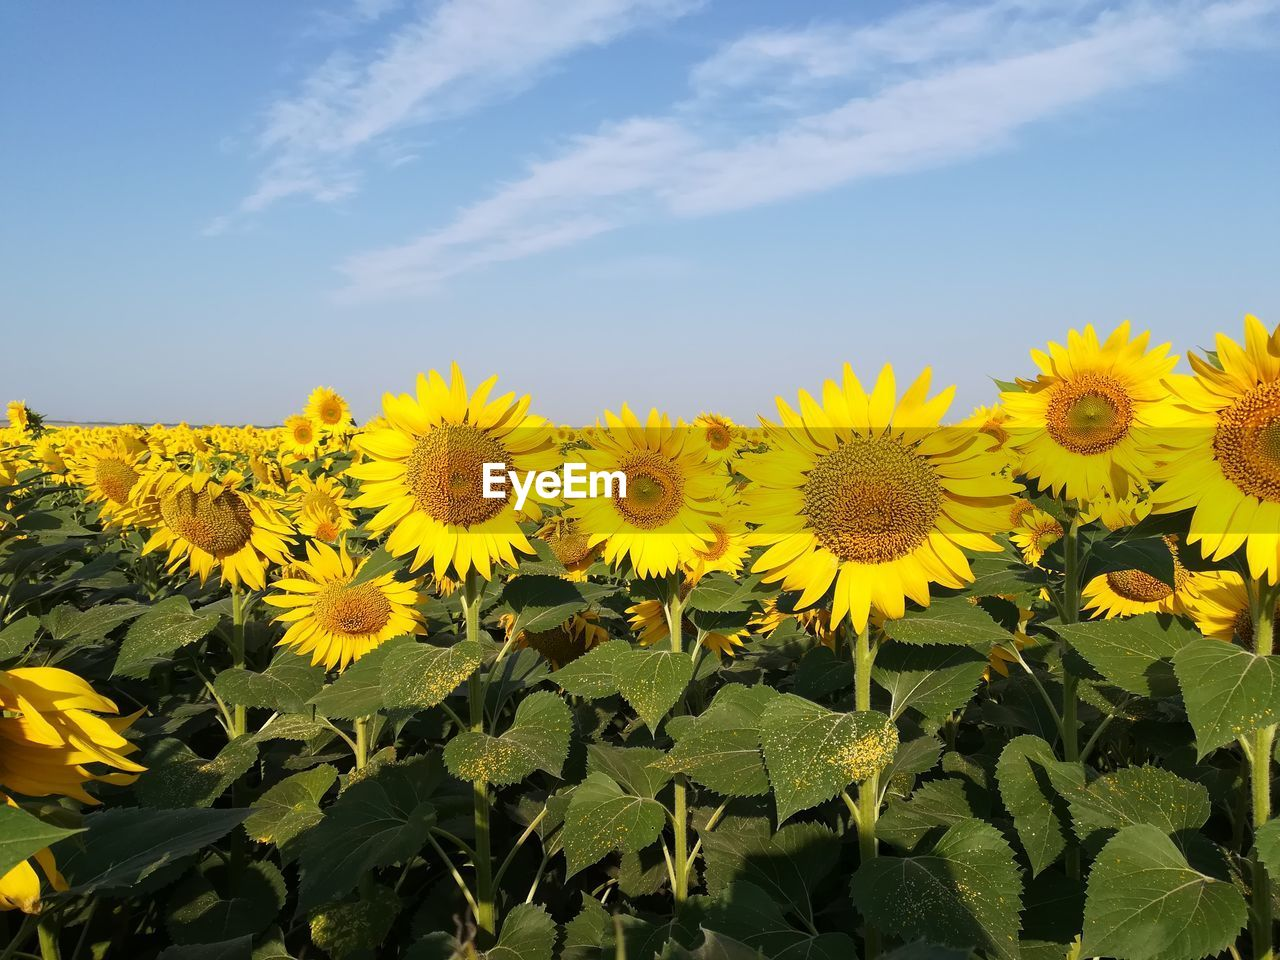 flower, flowering plant, yellow, growth, plant, beauty in nature, freshness, vulnerability, fragility, flower head, sky, petal, inflorescence, nature, sunflower, field, day, plant part, leaf, close-up, no people, outdoors, flowerbed